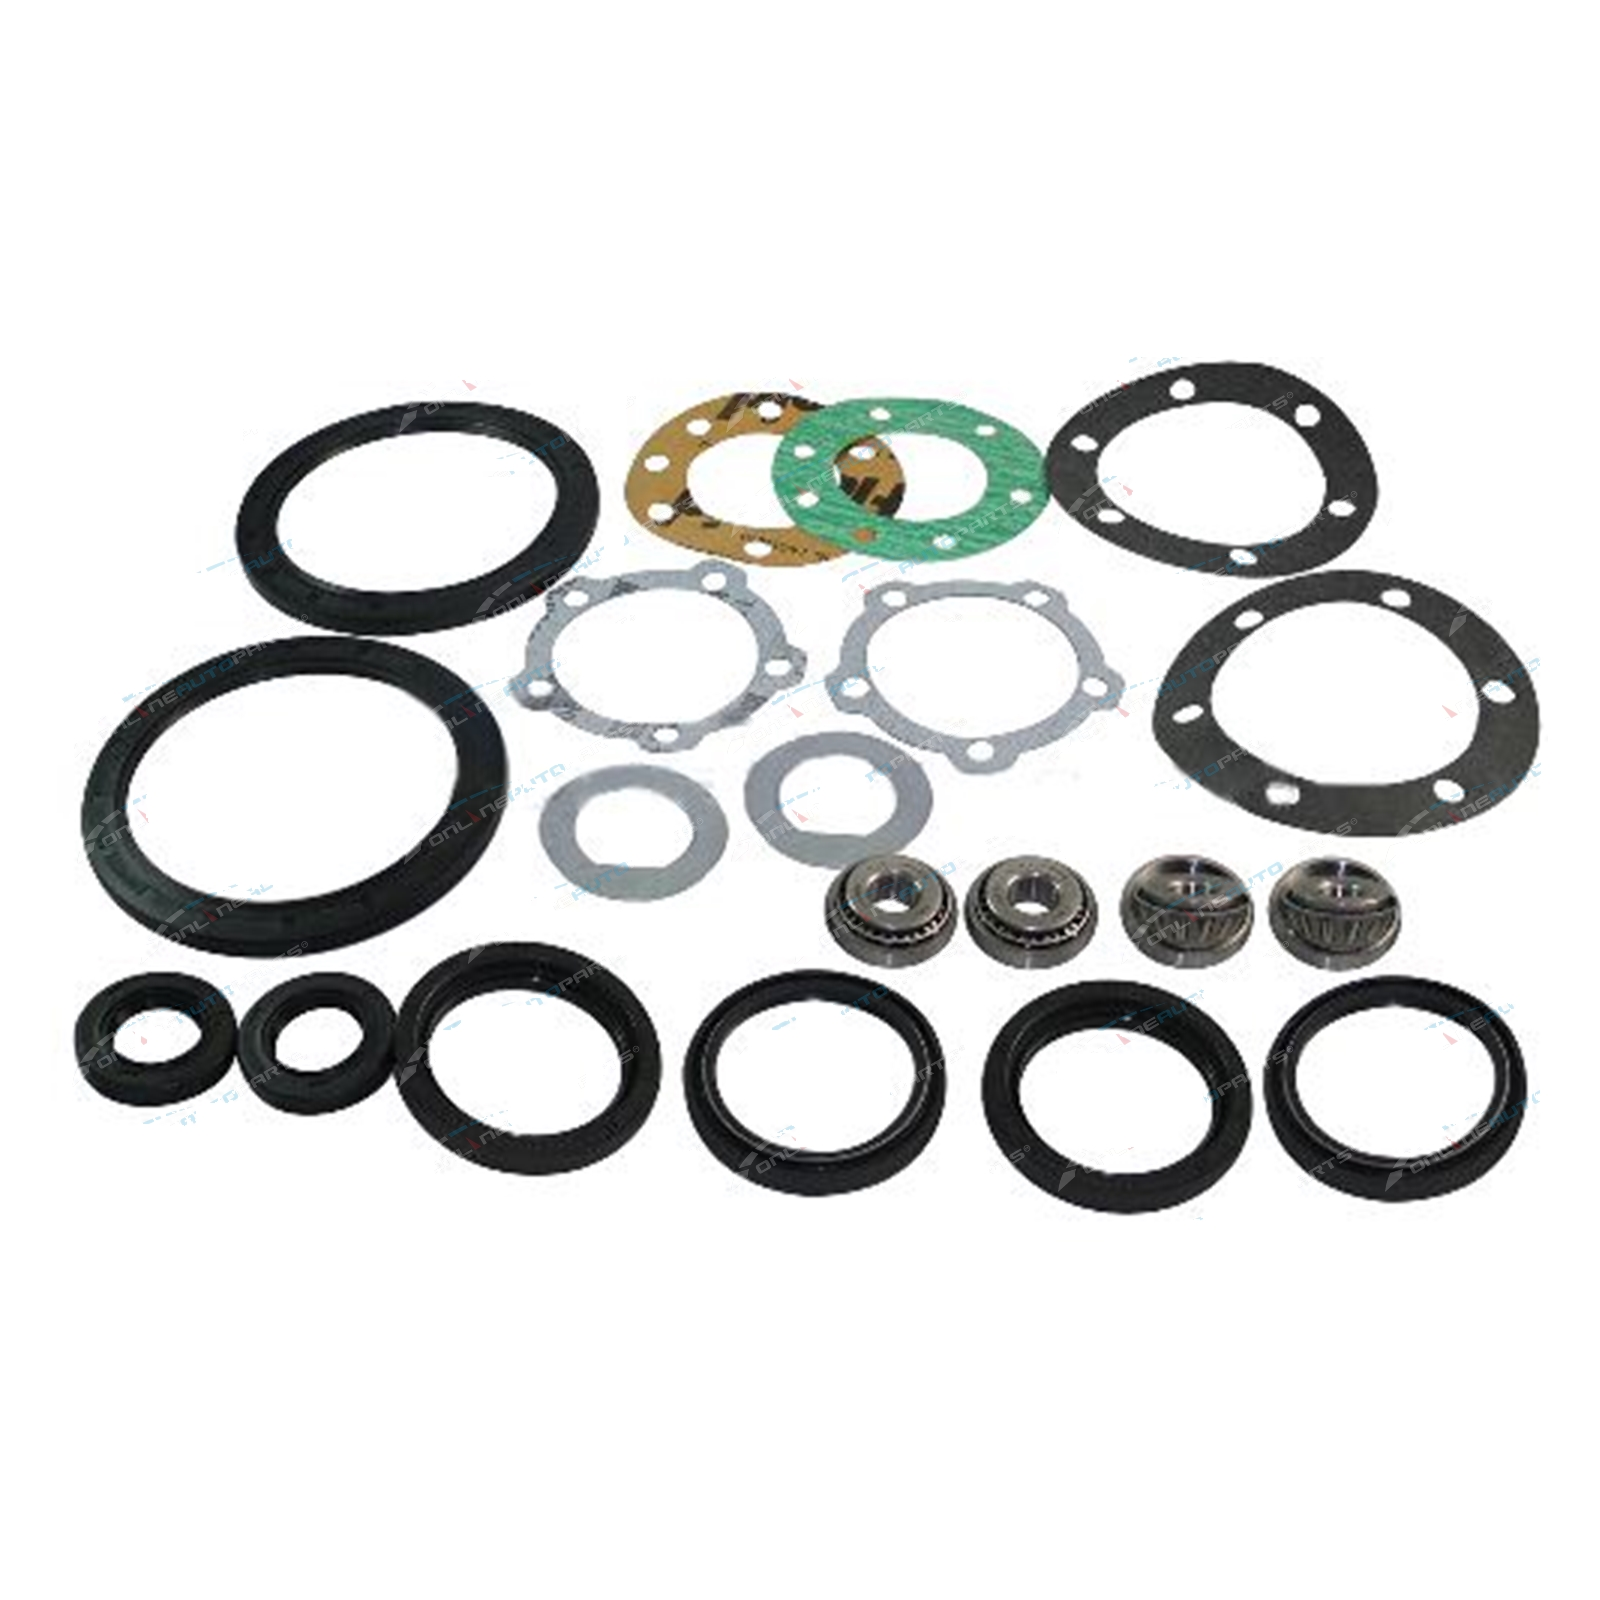 Range Rover 7/1985-1994 Swivel Hub Rebuild Kit